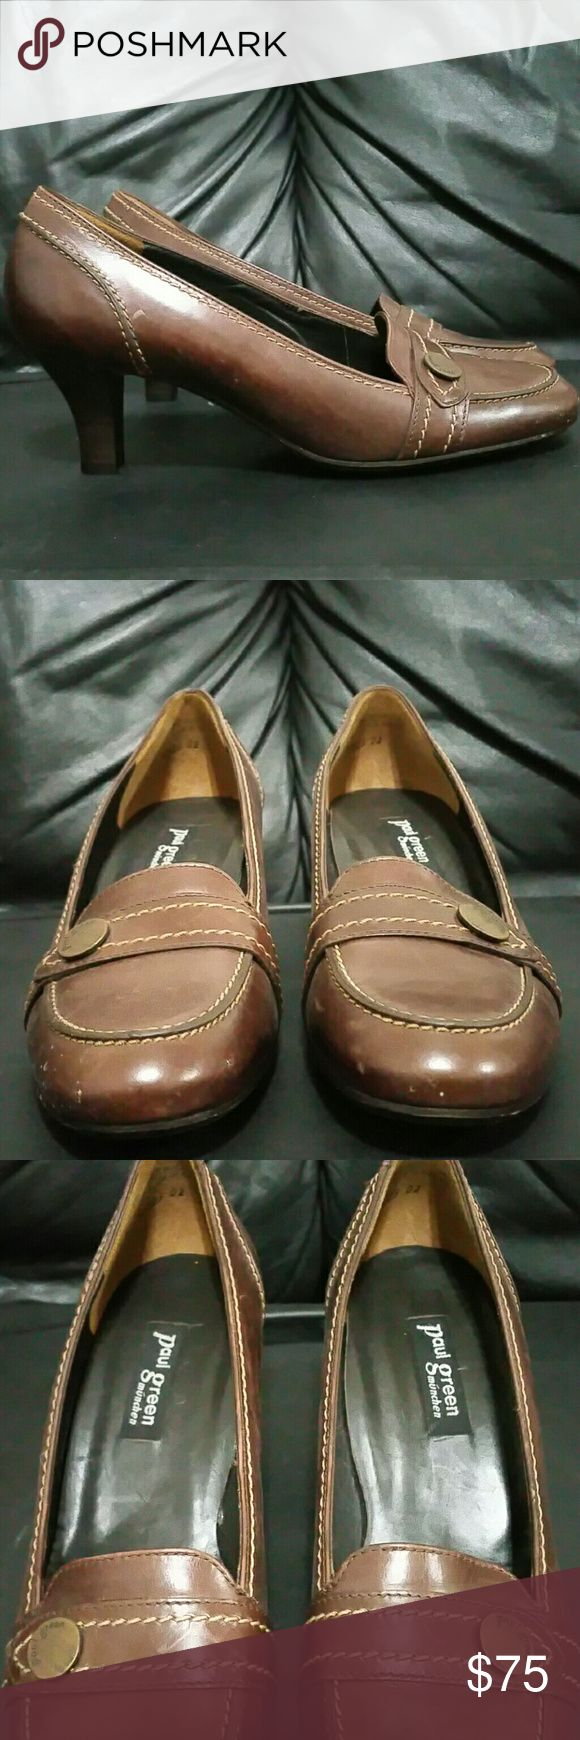 Paul Green Leather Pumps Size is a narrow 9 there's no stretch or giving room at all. It's very solid in form. Minimal flaws or wear. Paul Green Shoes Heels